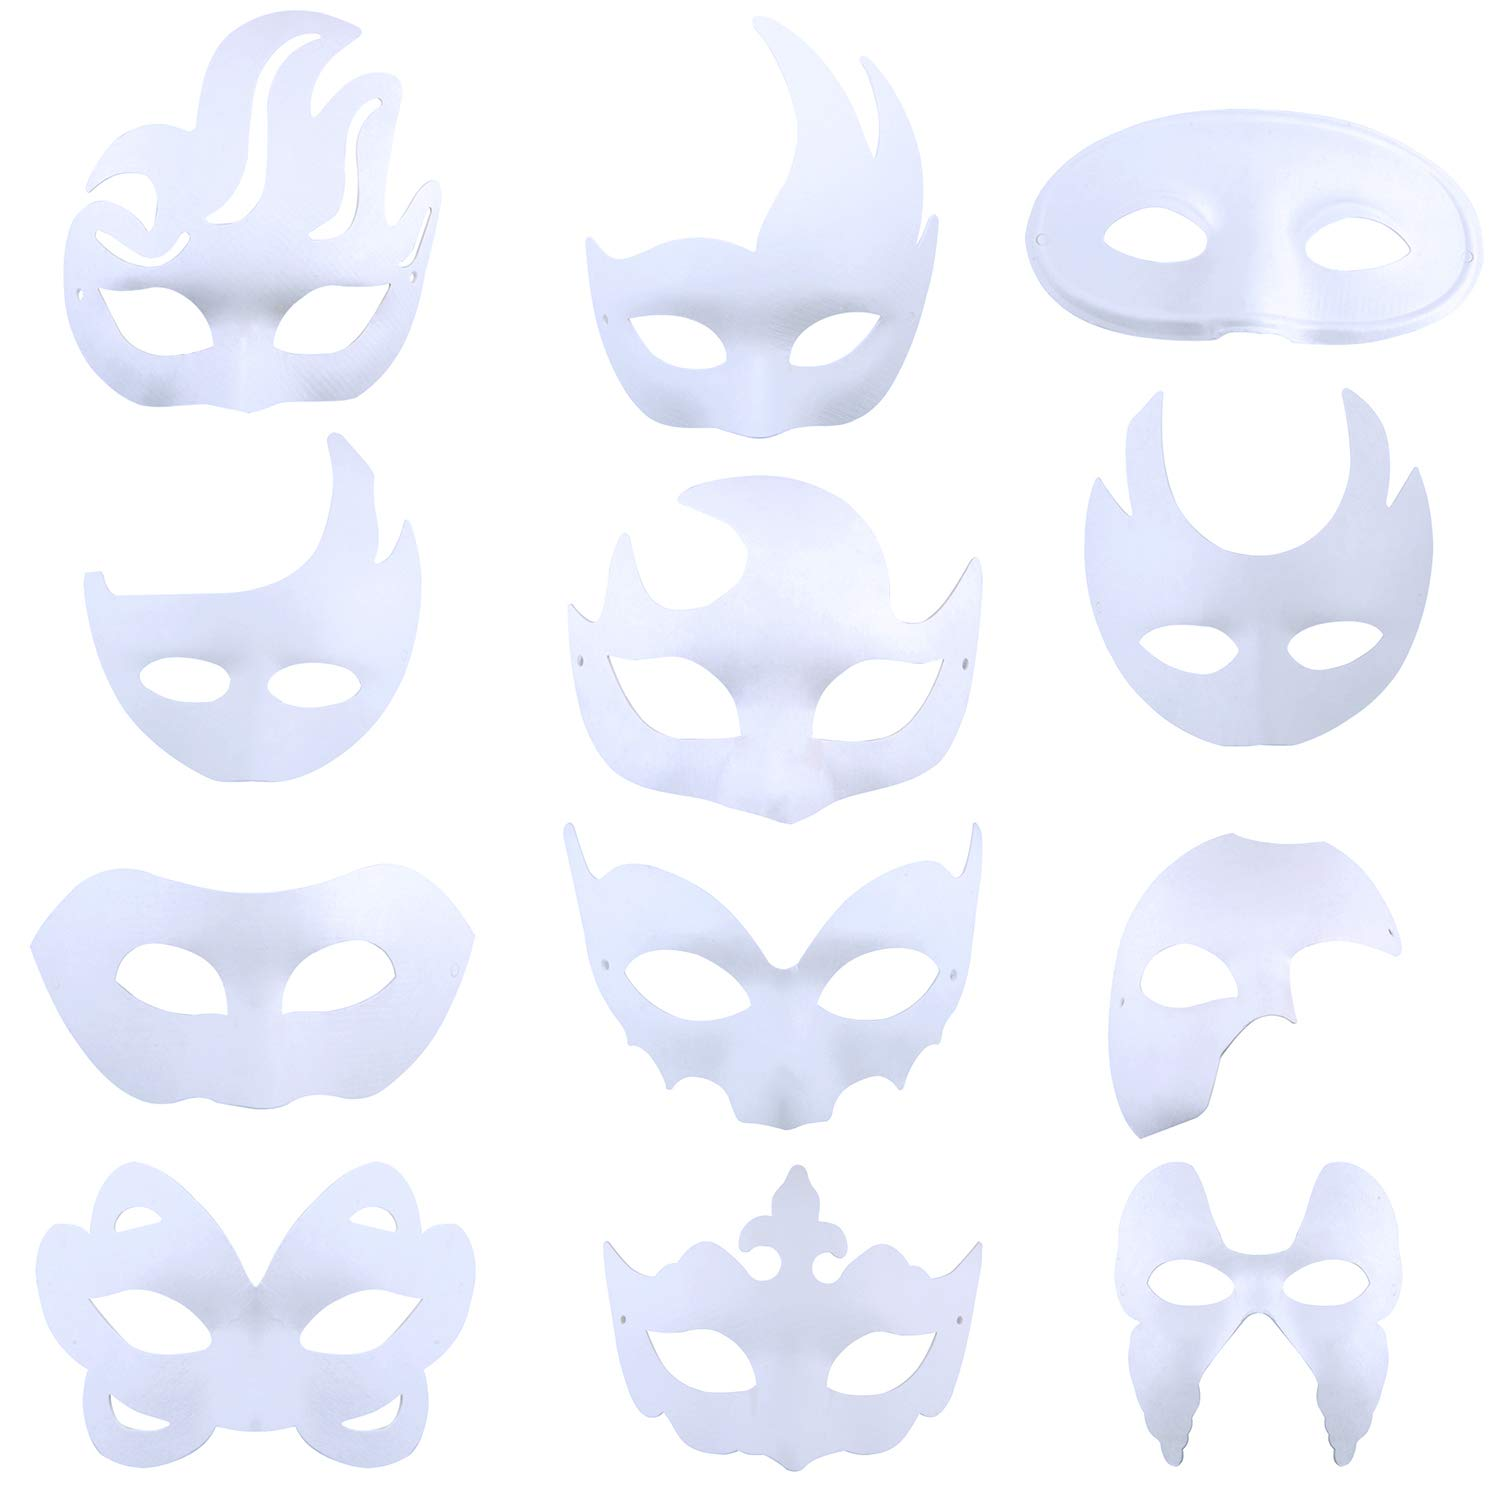 DIY White Mask,Kapmore 12 PCS Creative DIY Blank Mask Mardi Gras Halloween Party Plain Half Face Masks for Adult Kids